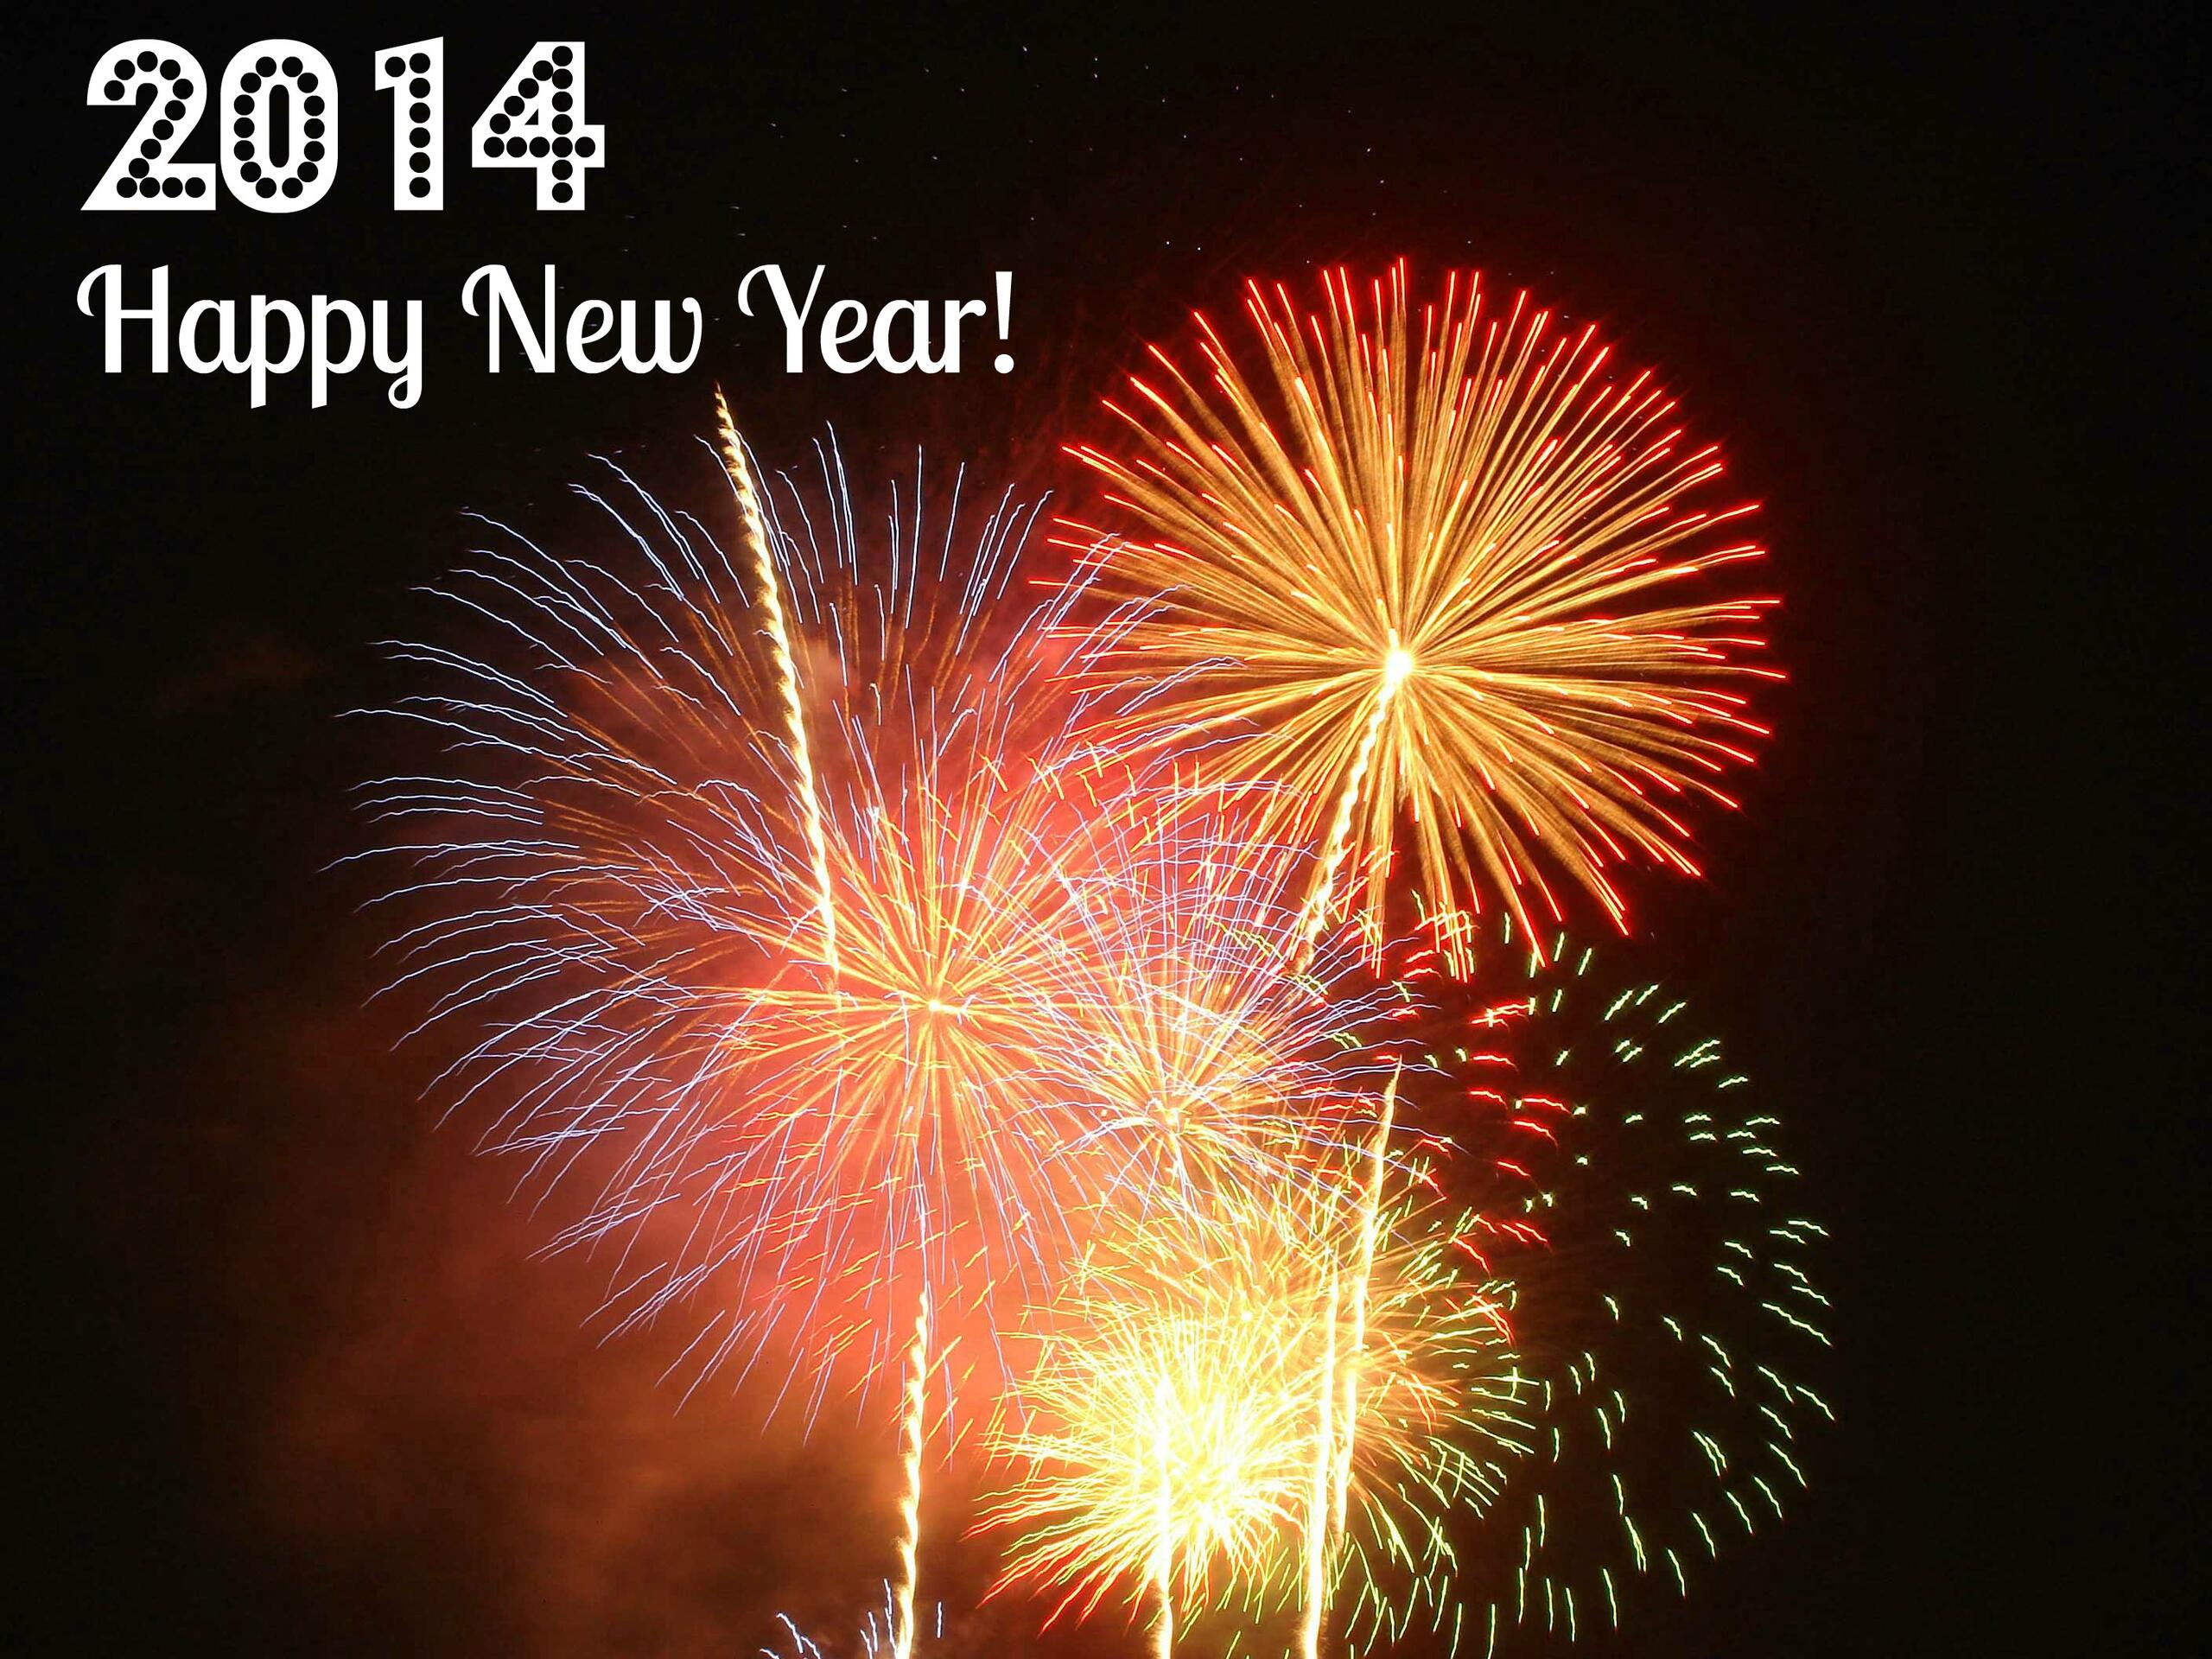 Fireworks and 2014 Happy New Year for Selling Property